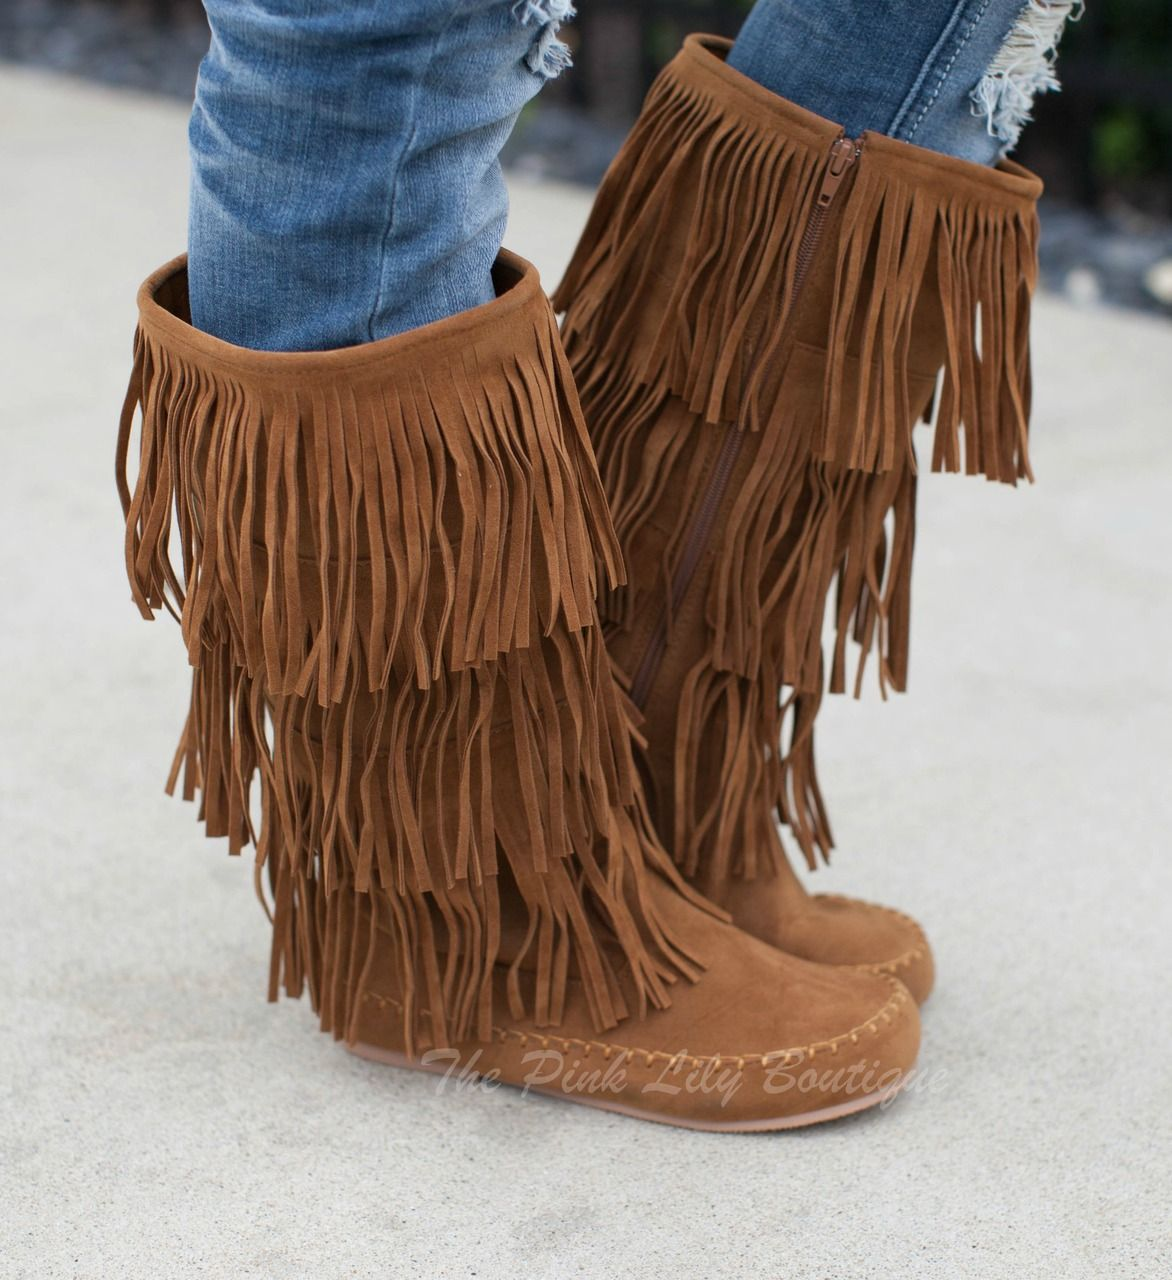 The Pink Lily Boutique - Brown Fringe Moccasin Boots , $45.00 ...